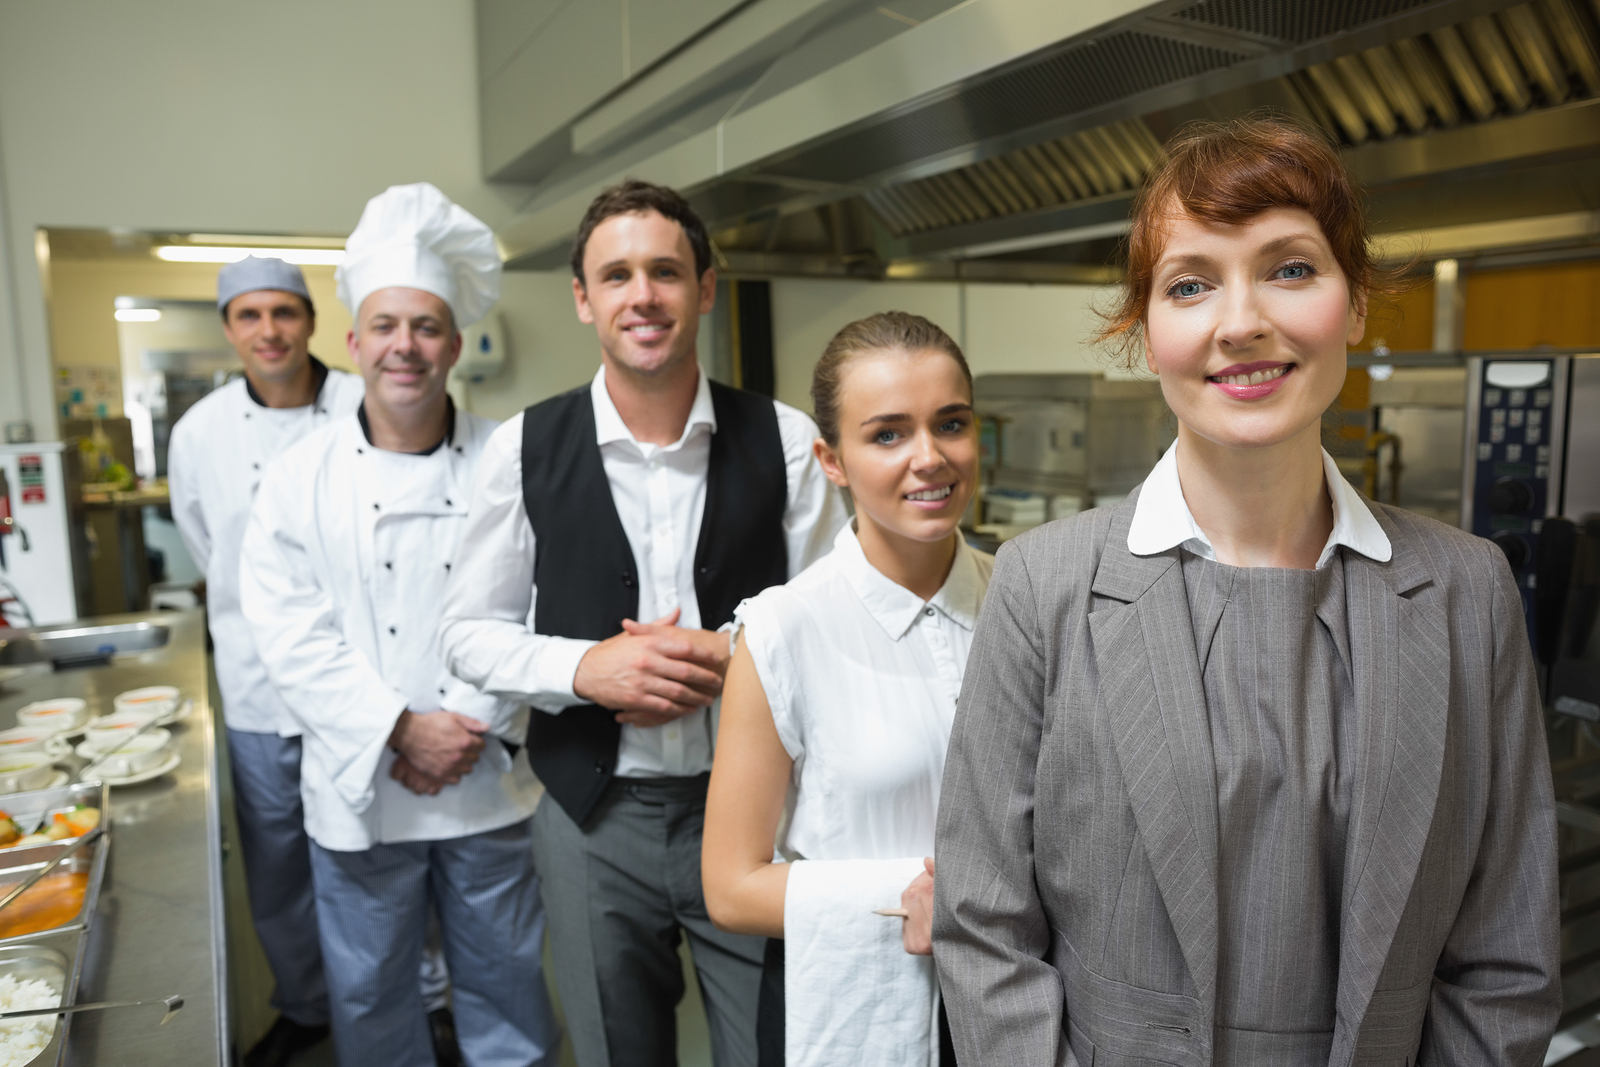 learn some great advice for managing restaurant staff